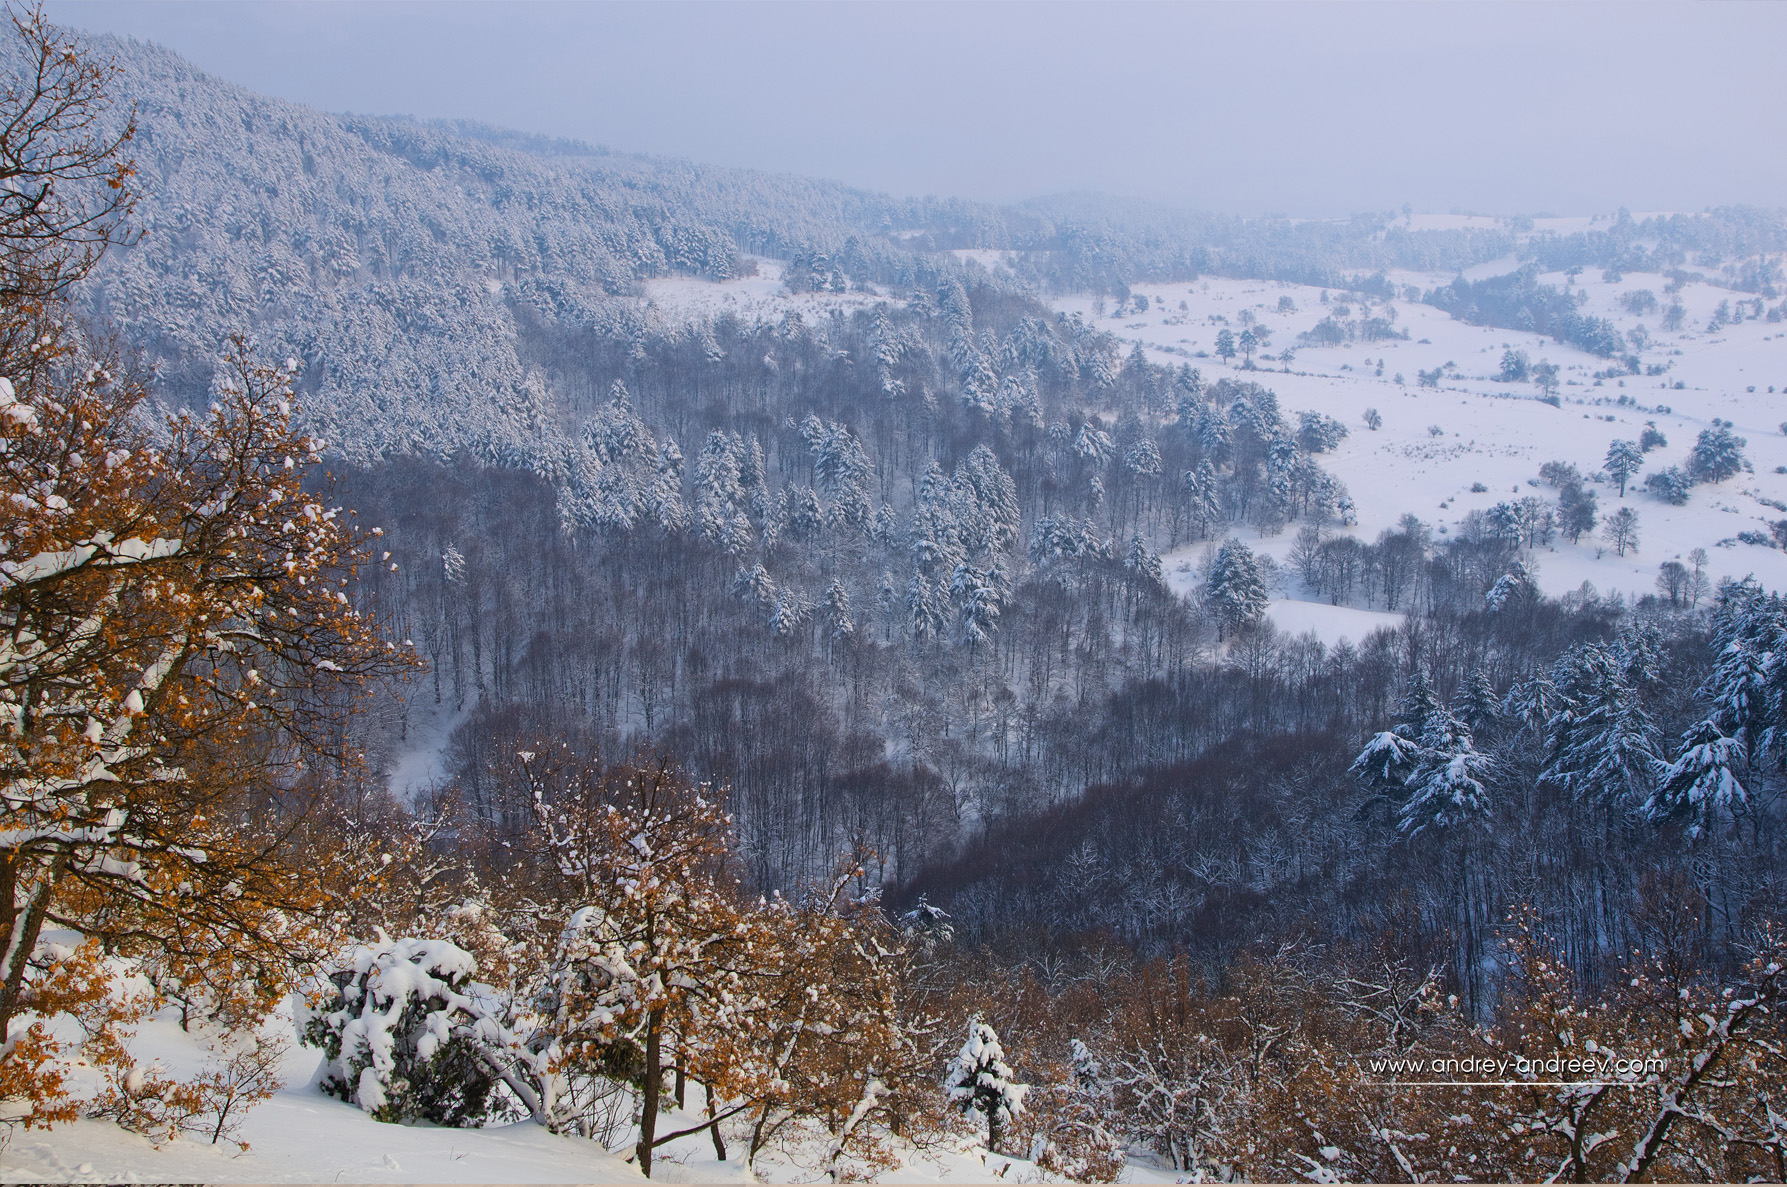 Rhodope mountains in the winter, Bulgaria